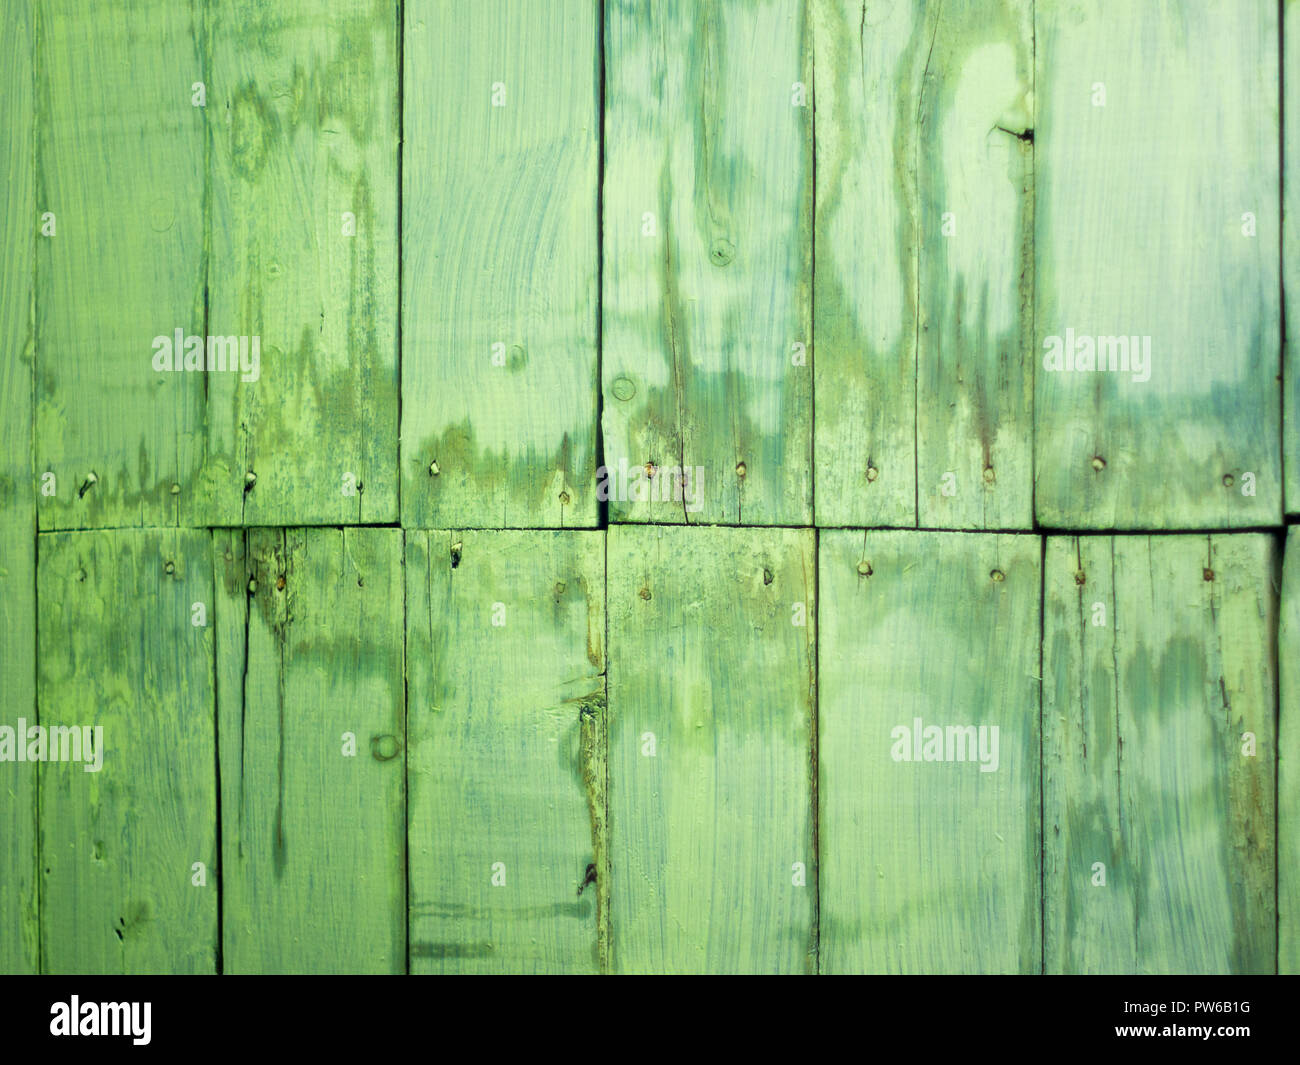 Old green painted and stained wooden planks with nail heads background texture - Stock Image